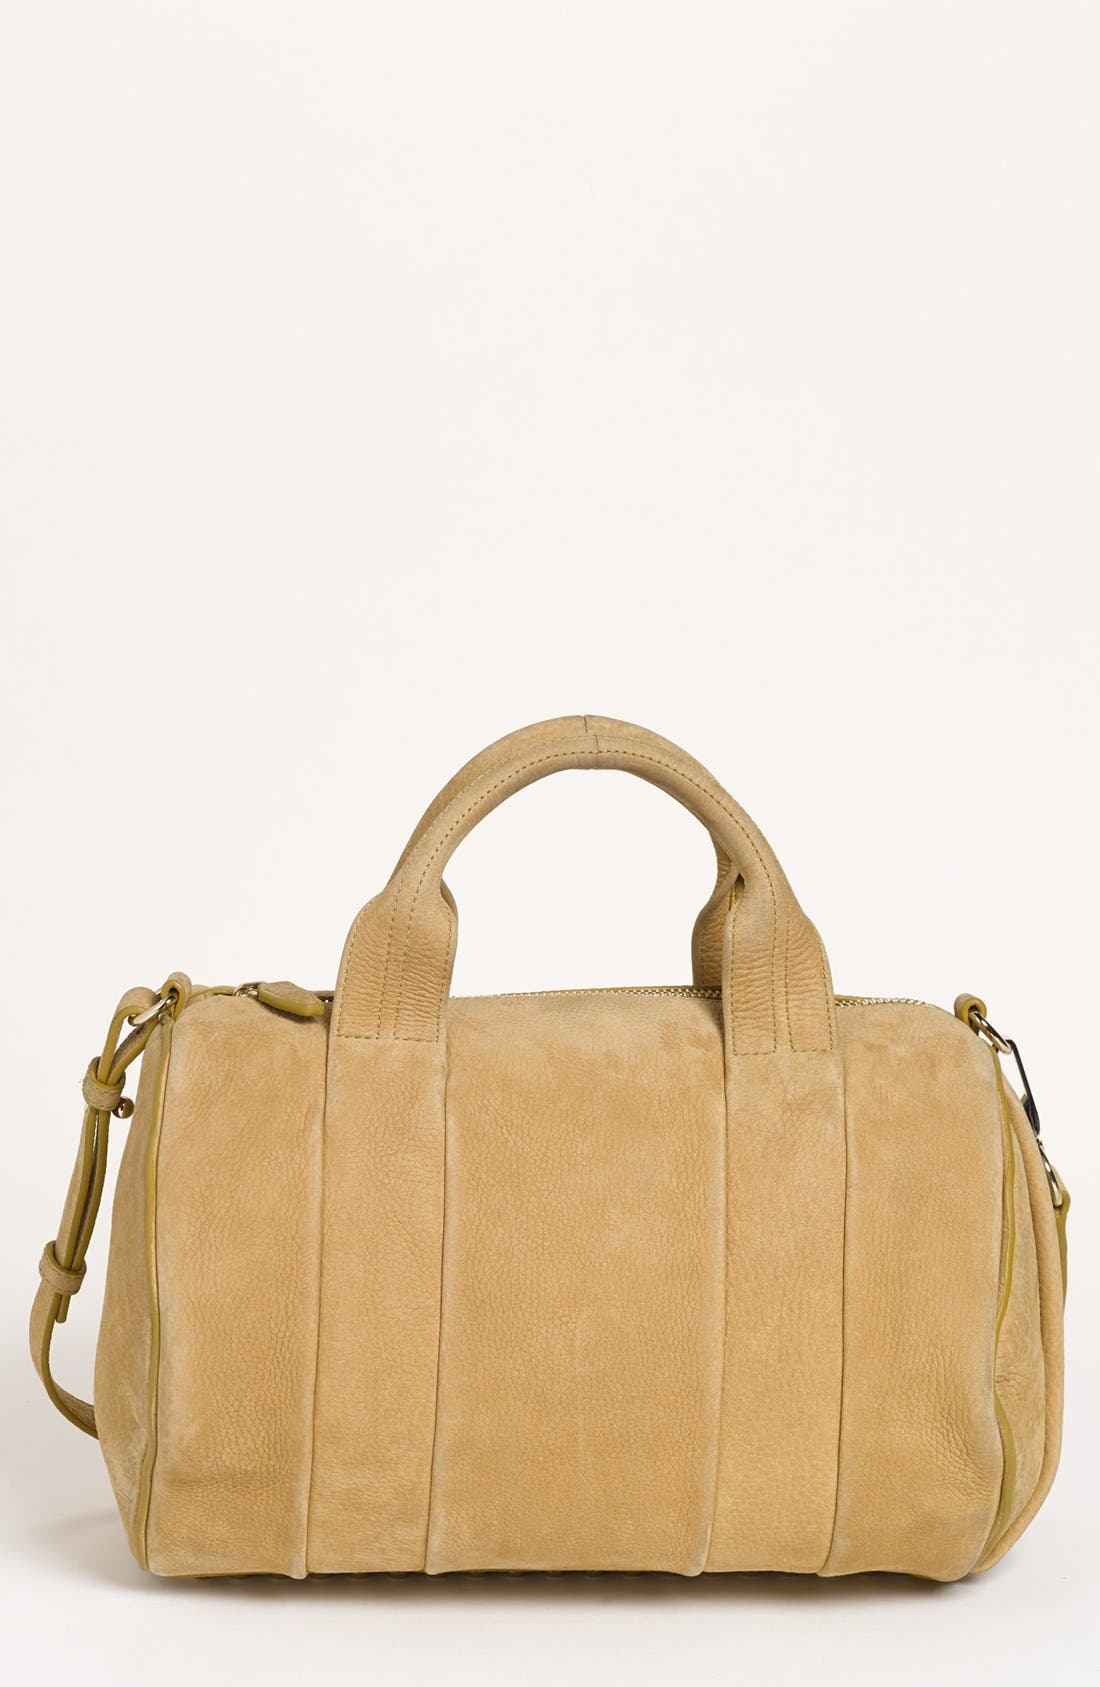 Main Image - Alexander Wang 'Rocco Dumbo Slick - Pale Gold' Leather Satchel